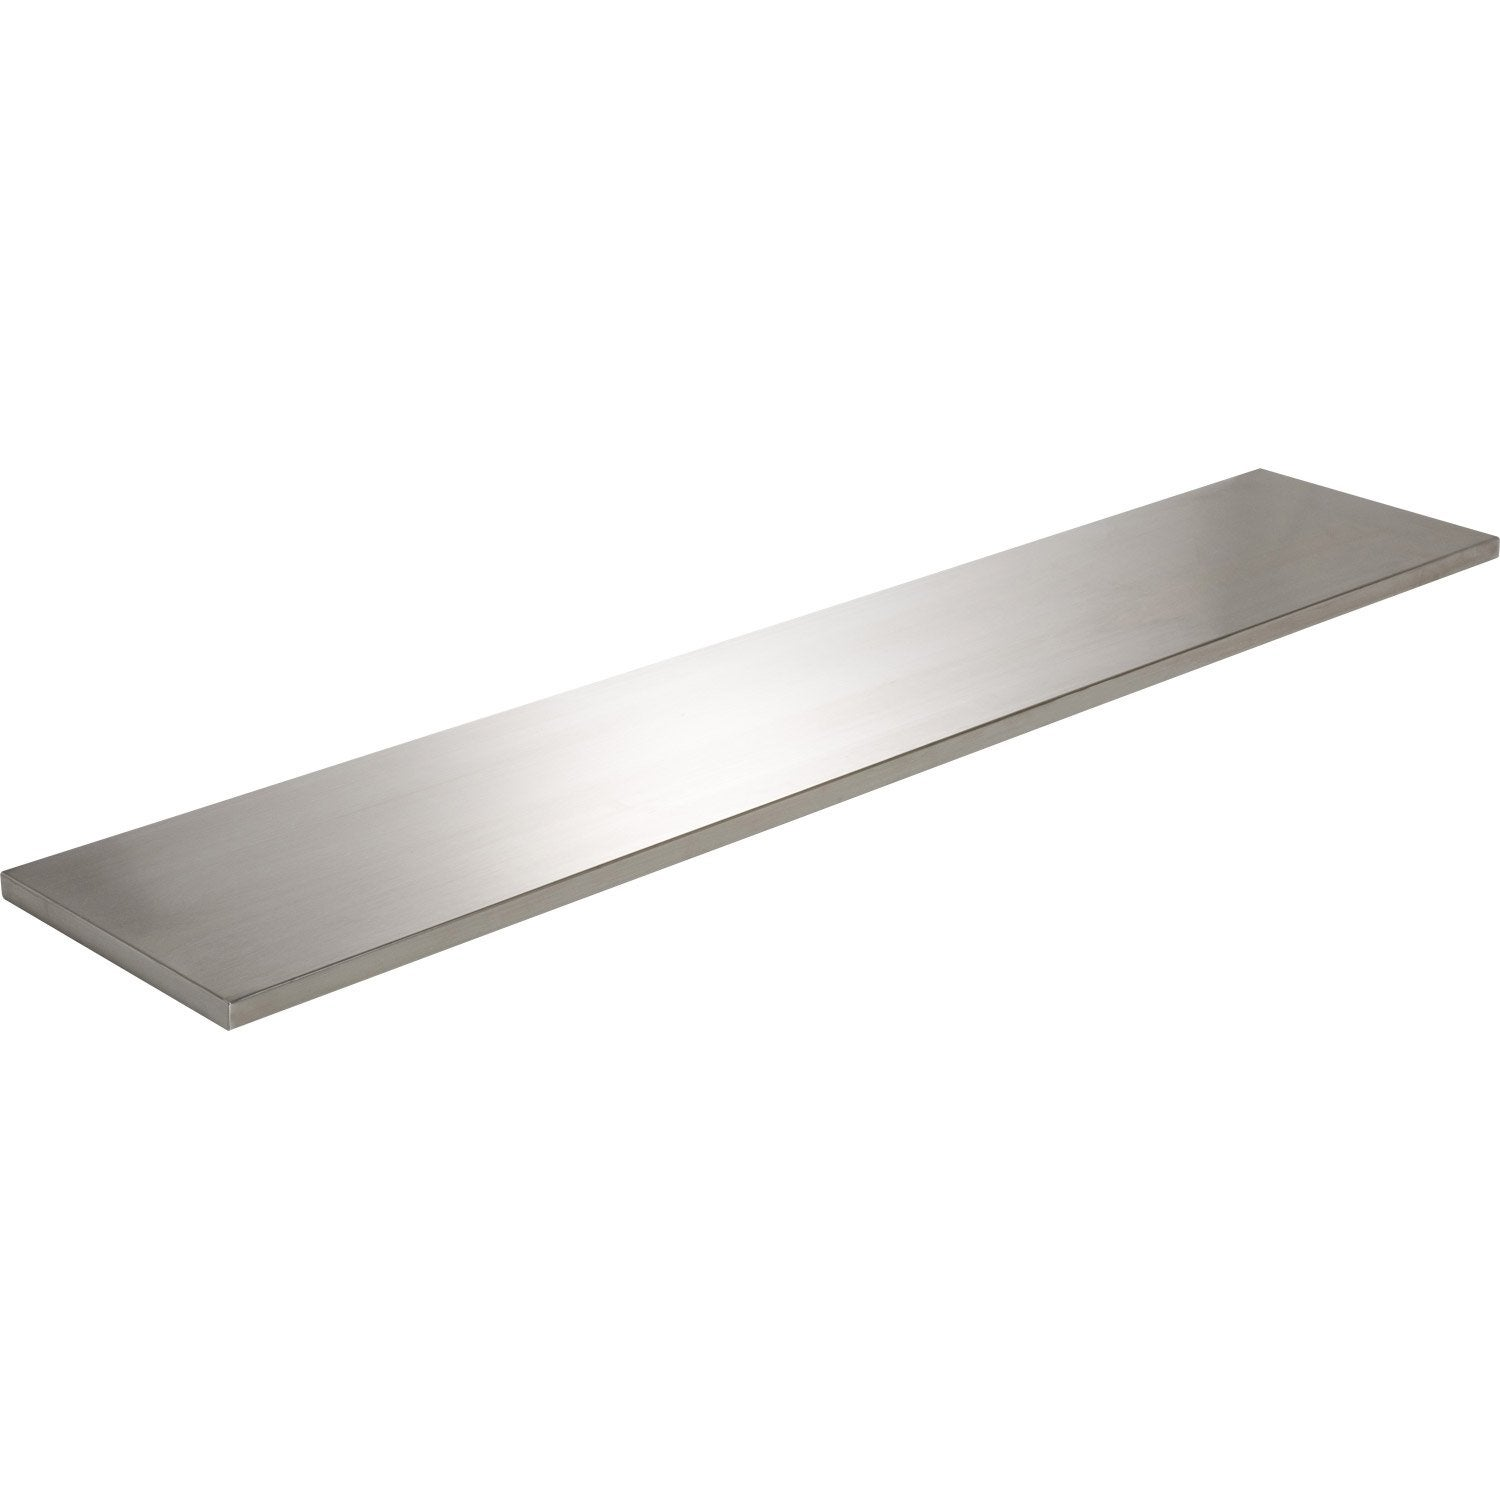 Etag re murale inox l 90 x p 23 5 cm mm leroy merlin - Tablette wenge leroy merlin ...